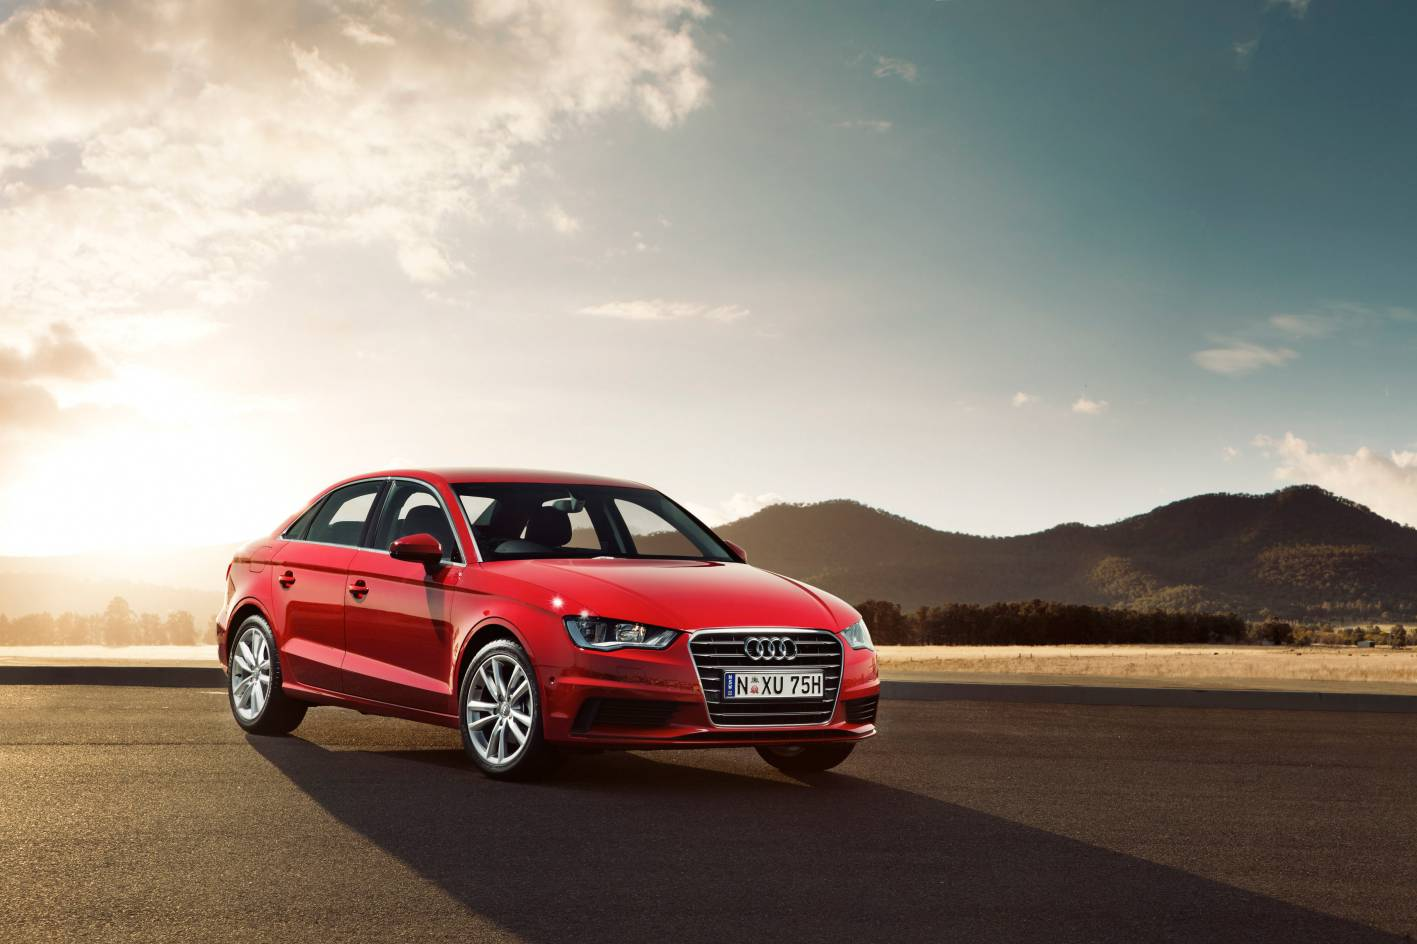 Audi Cars News A3 Sedan Pricing And Specification Announced